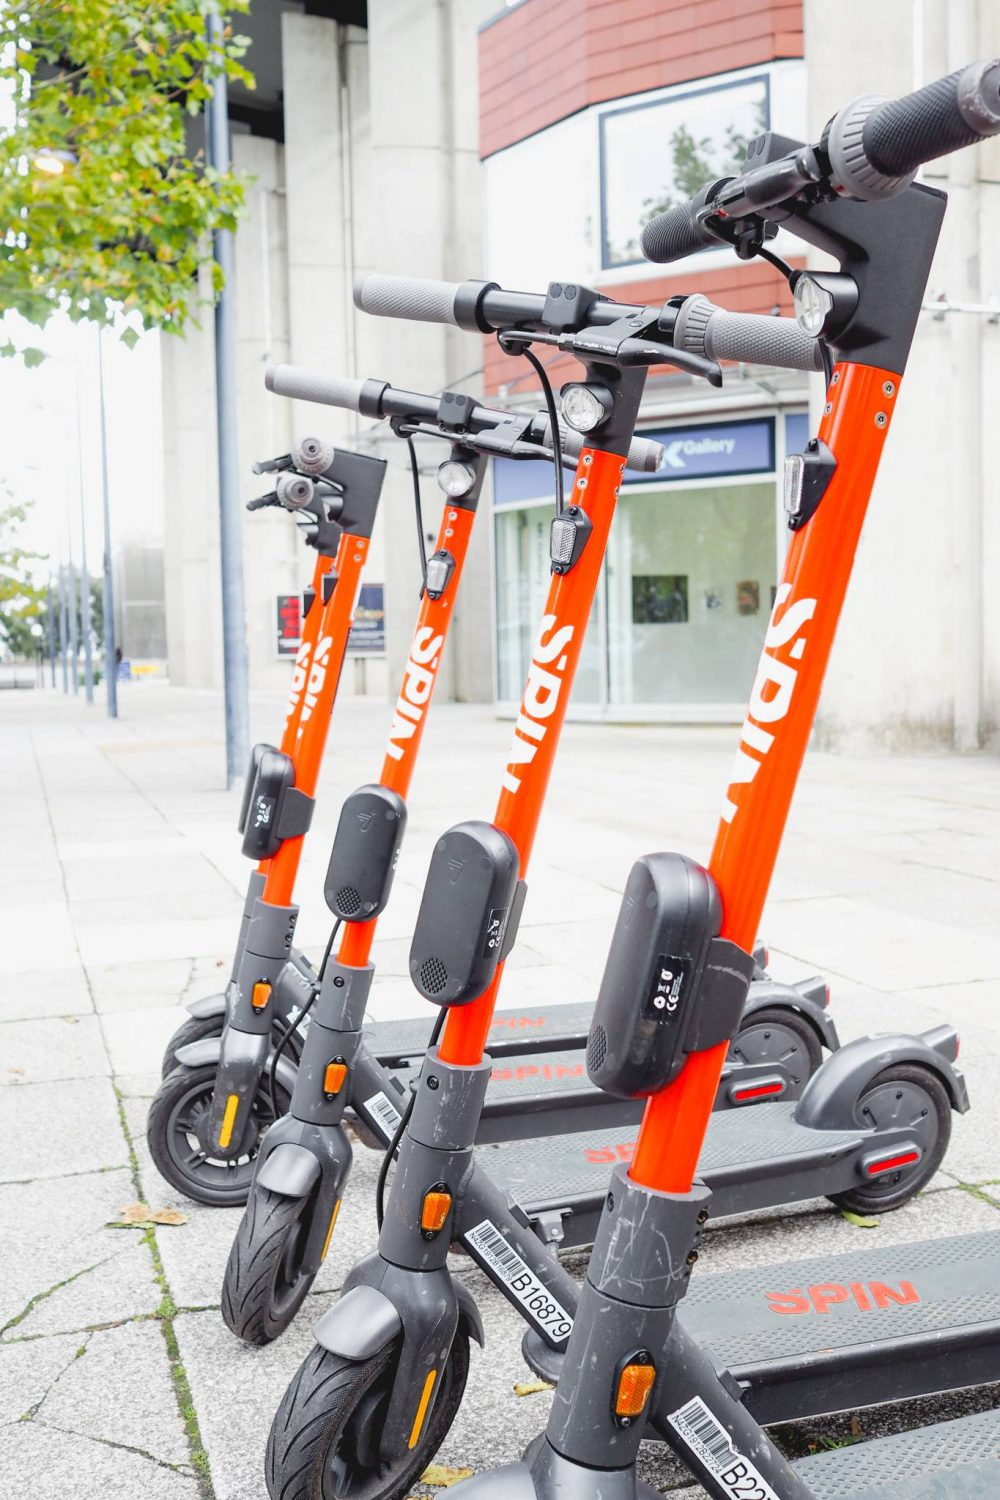 Five spin e-scooters parked in Central Milton Keynes.